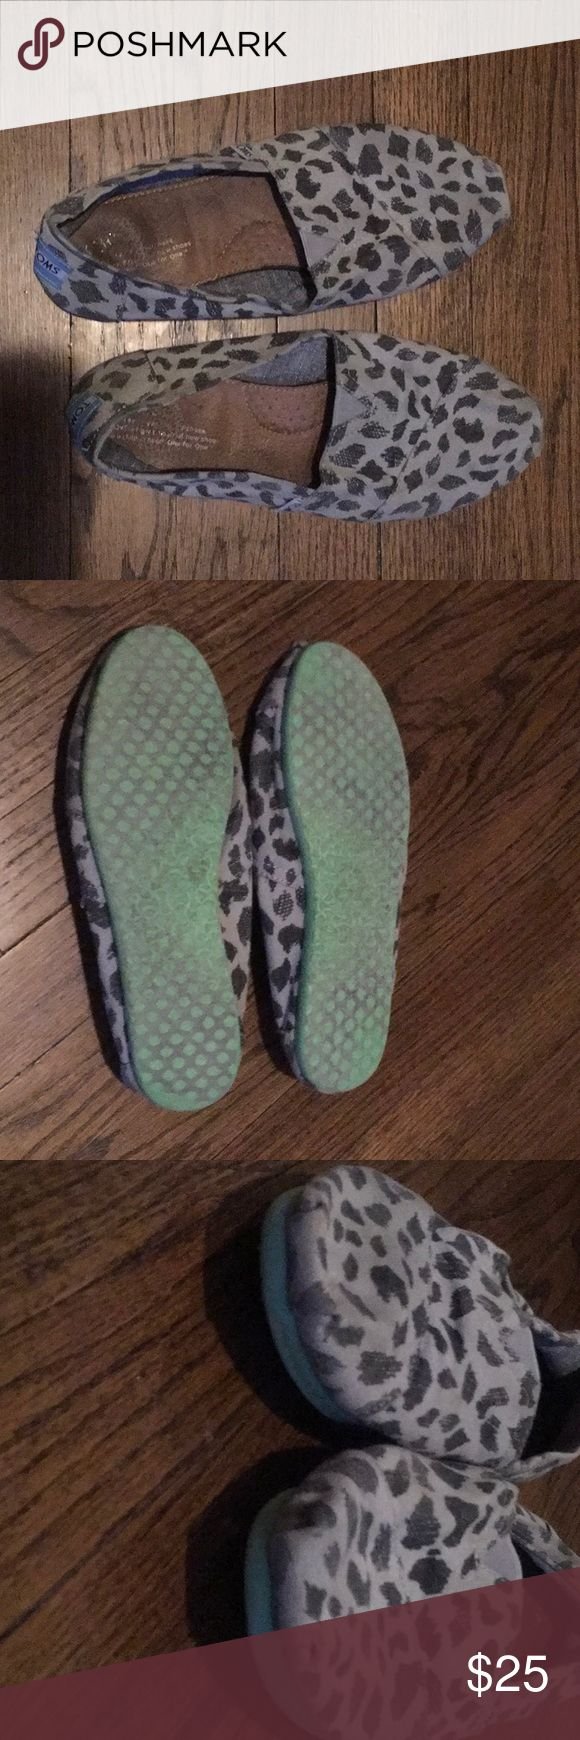 Gray Leopard TOMS 8.5 Gray leopard print Original Toms with green sole. Used Condition, but the toes and heels still look good, no holes, etc. Some slipping in the leather interior lining, but other than that good condition. Make an offer! Toms Shoes